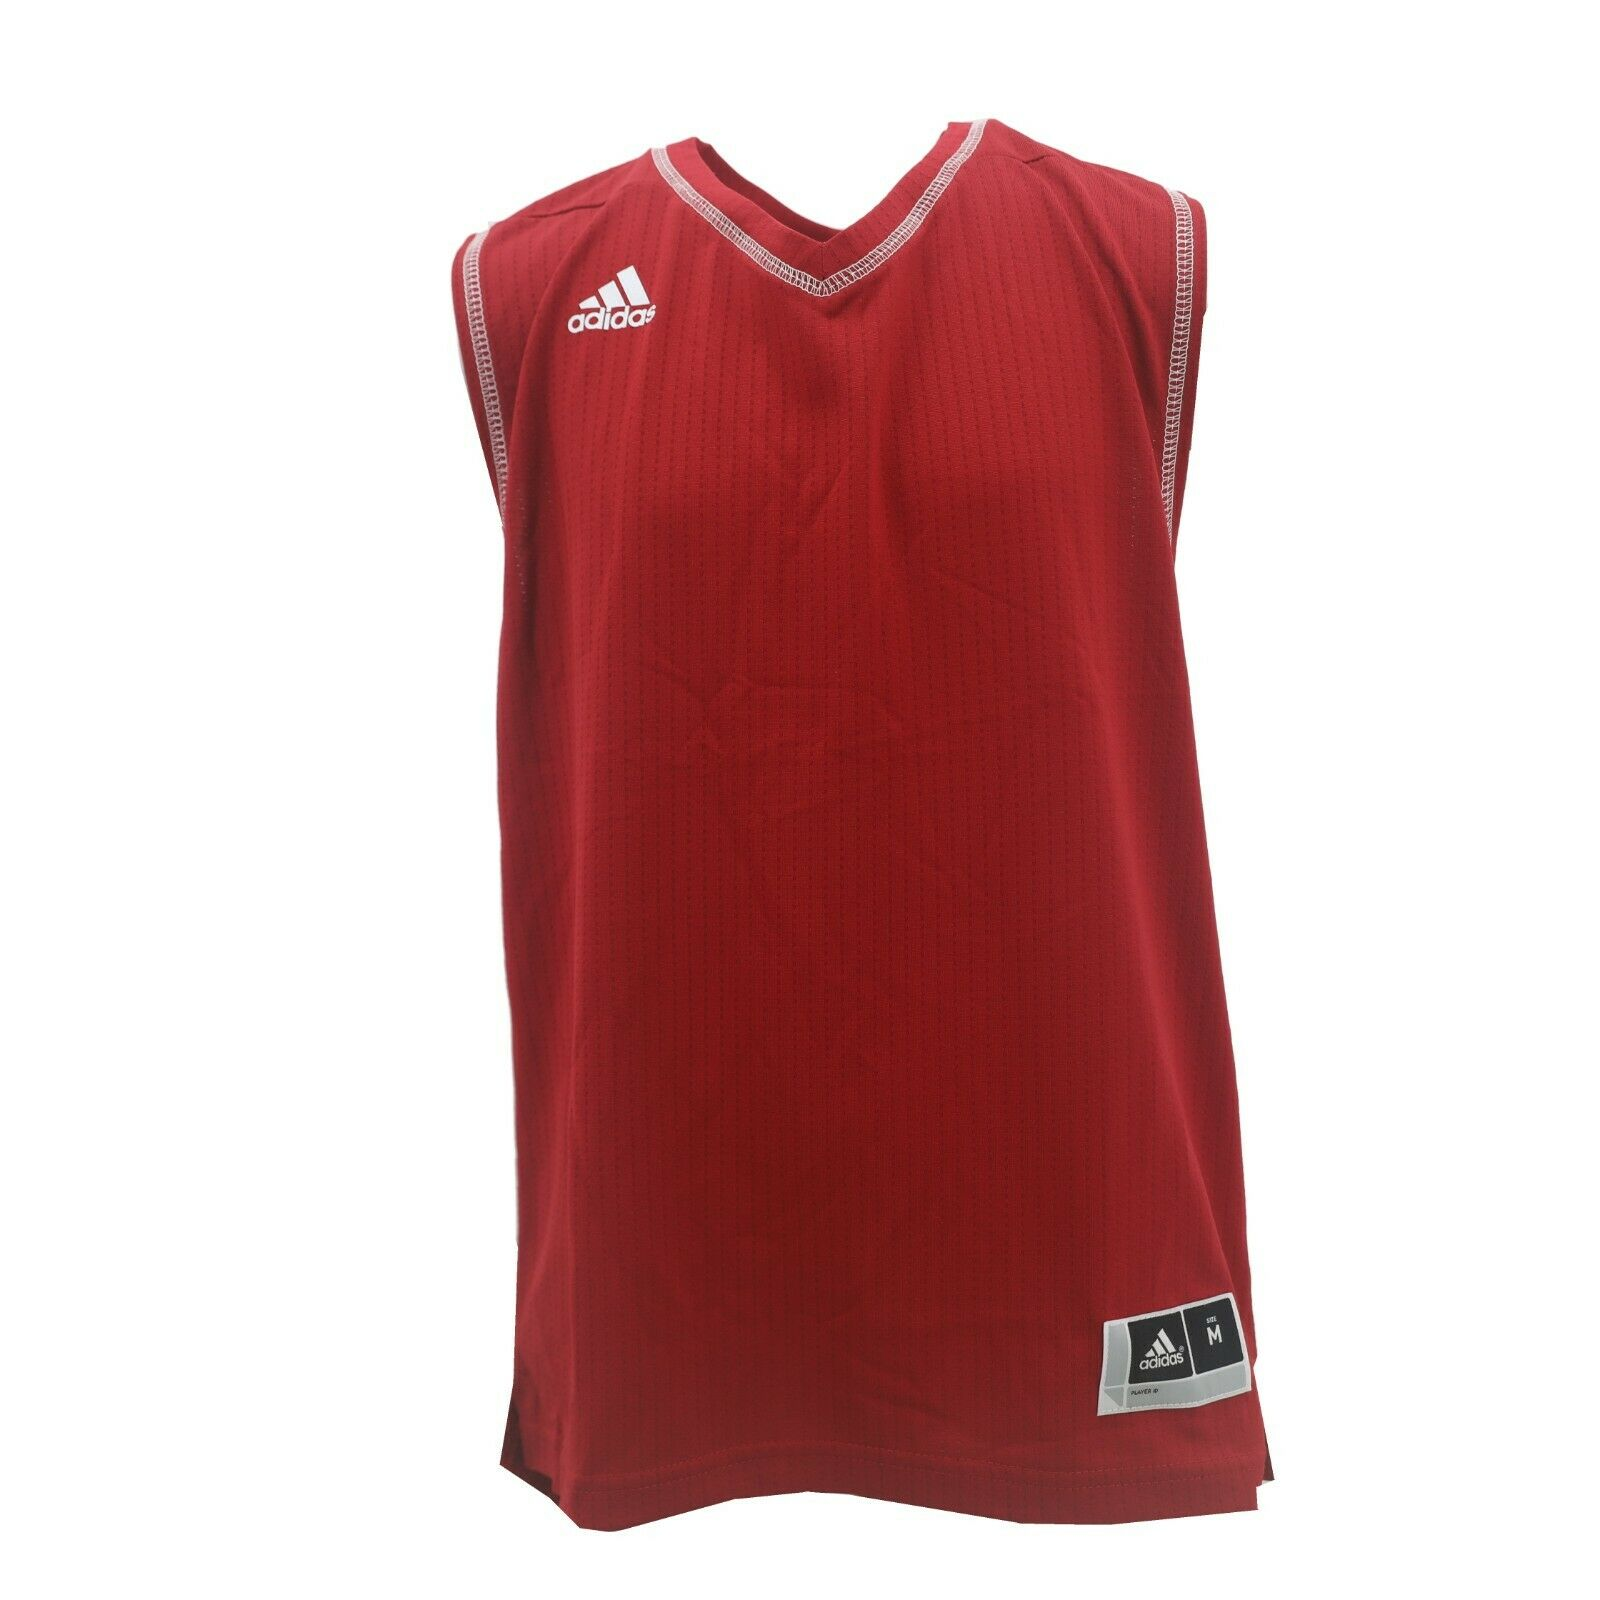 save off 0773b 05c60 Details about Indiana Hoosiers Official NCAA Adidas Kids Youth Size Blank  Basketball Jersey